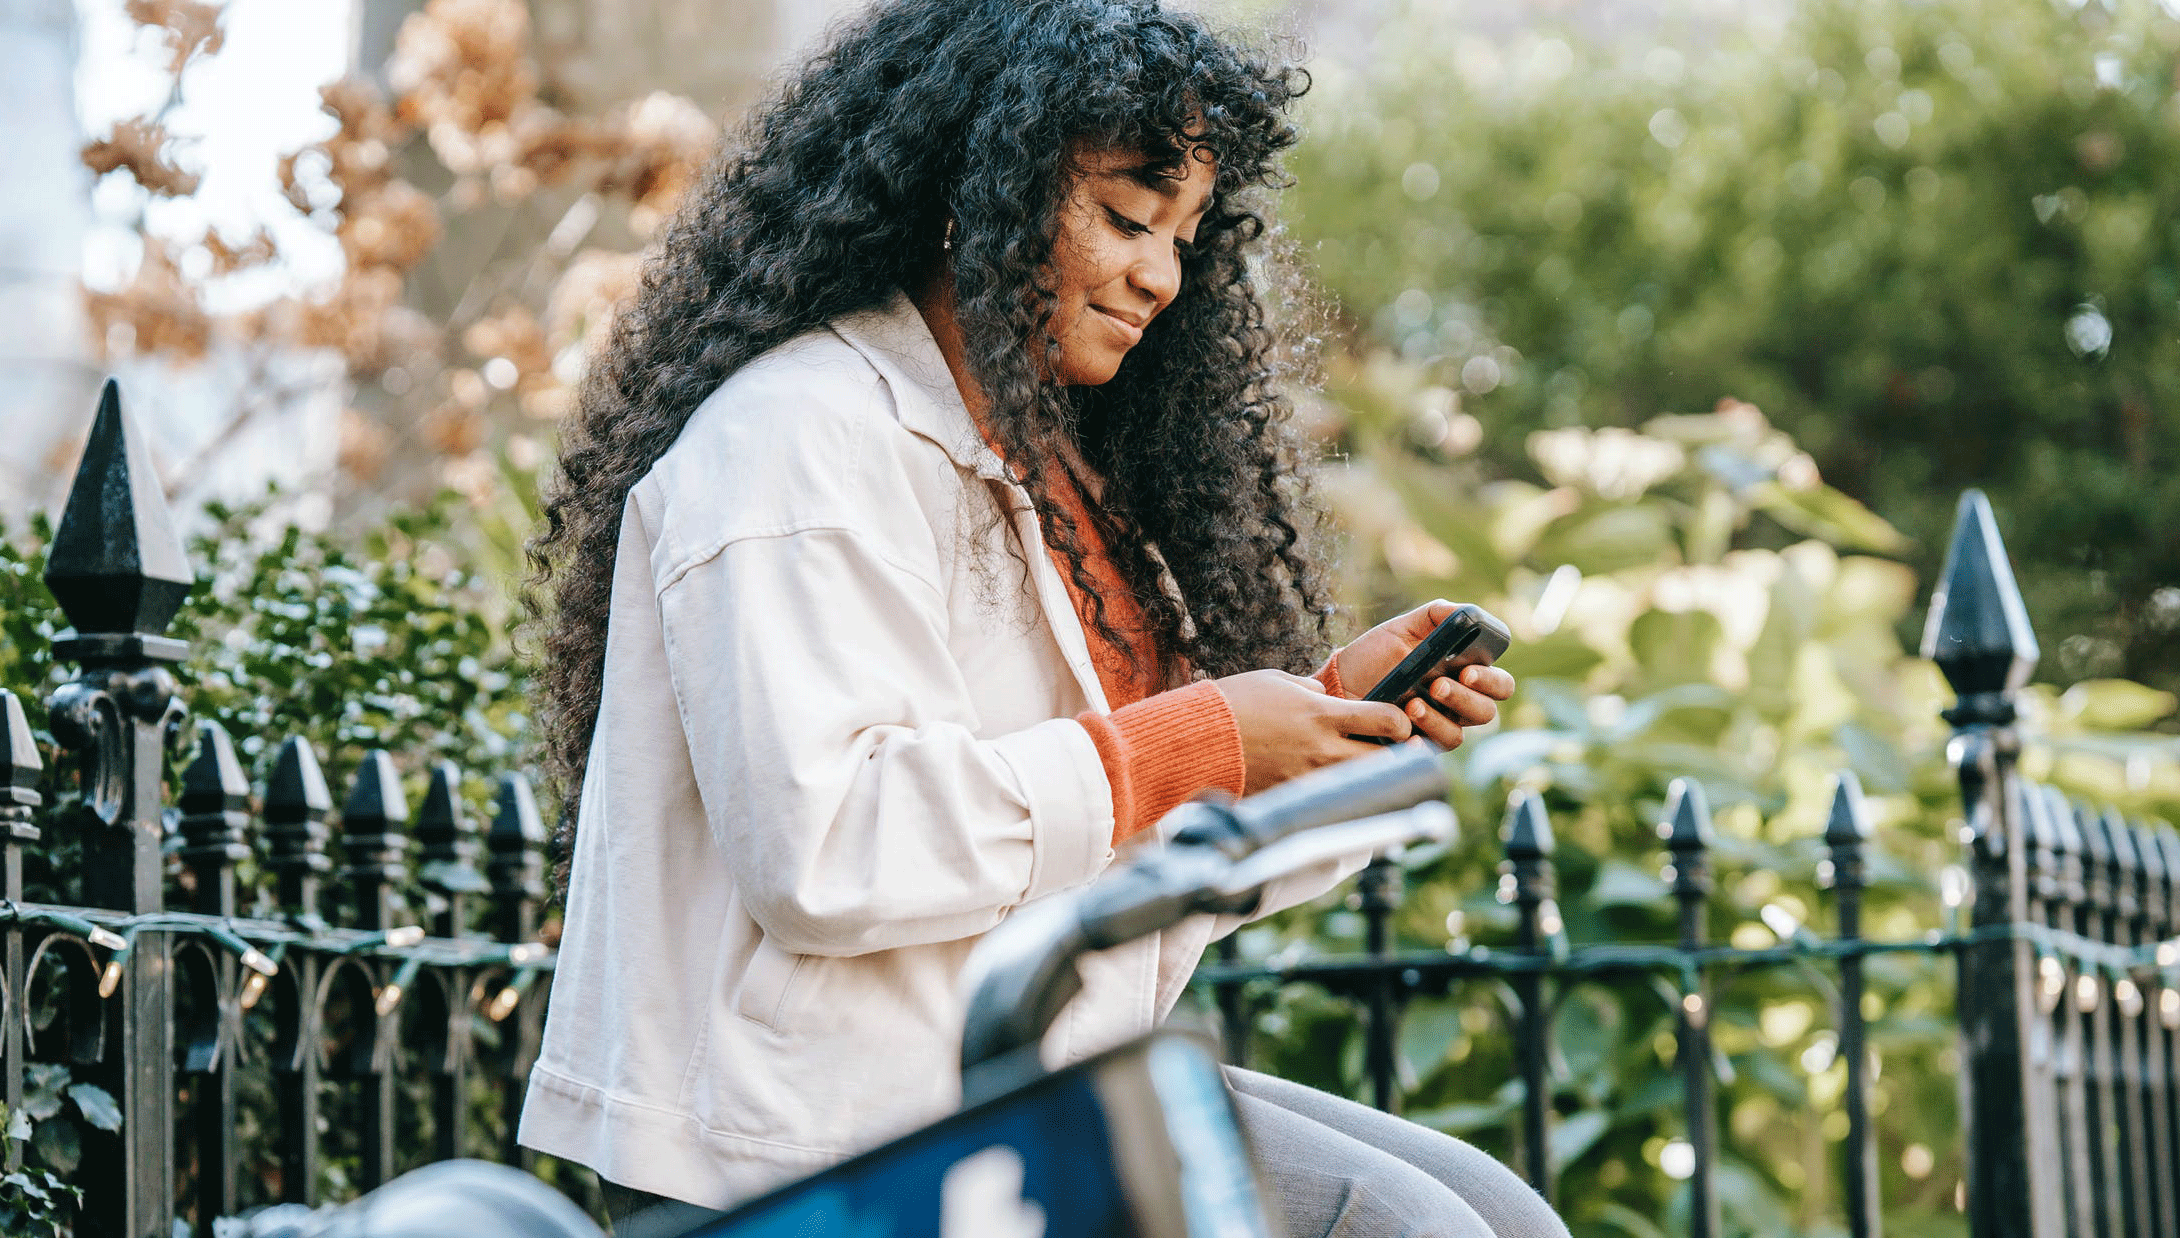 Woman with smartphone sitting on a bench near a bike by a park gate.